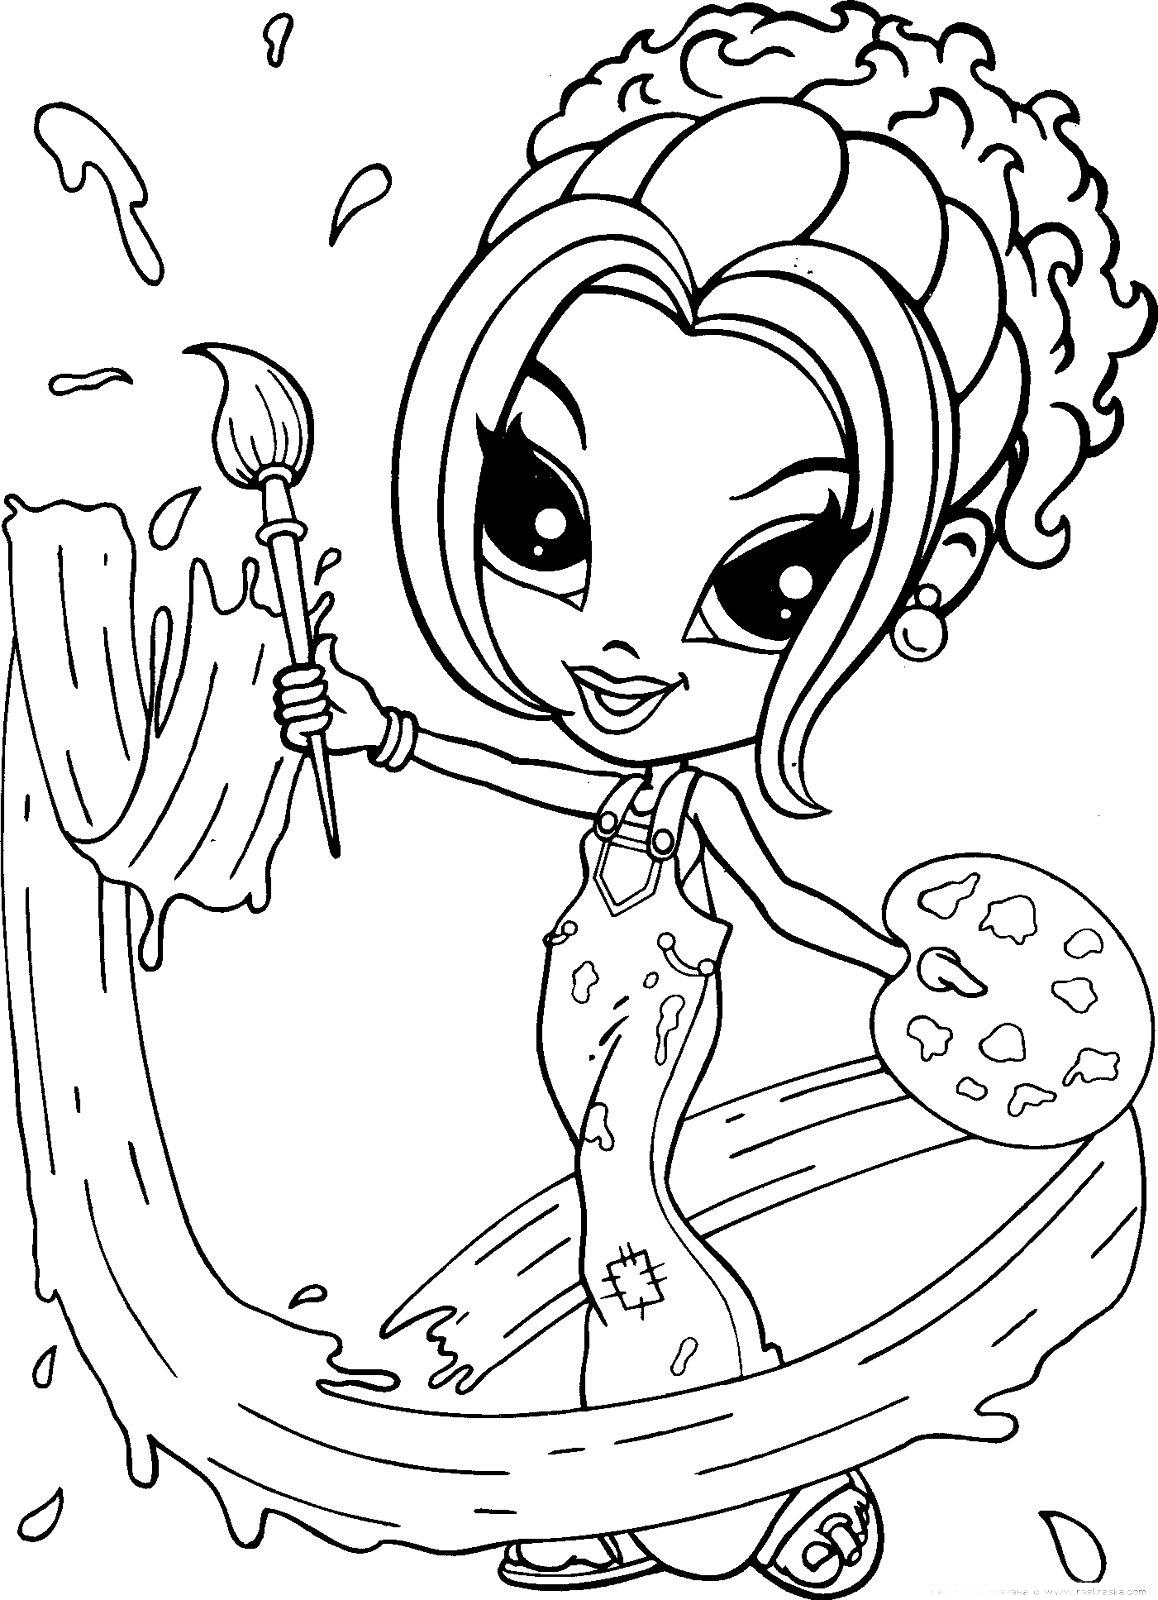 coloring pages to print for free free printable advanced coloring pages coloring home print to pages coloring free for